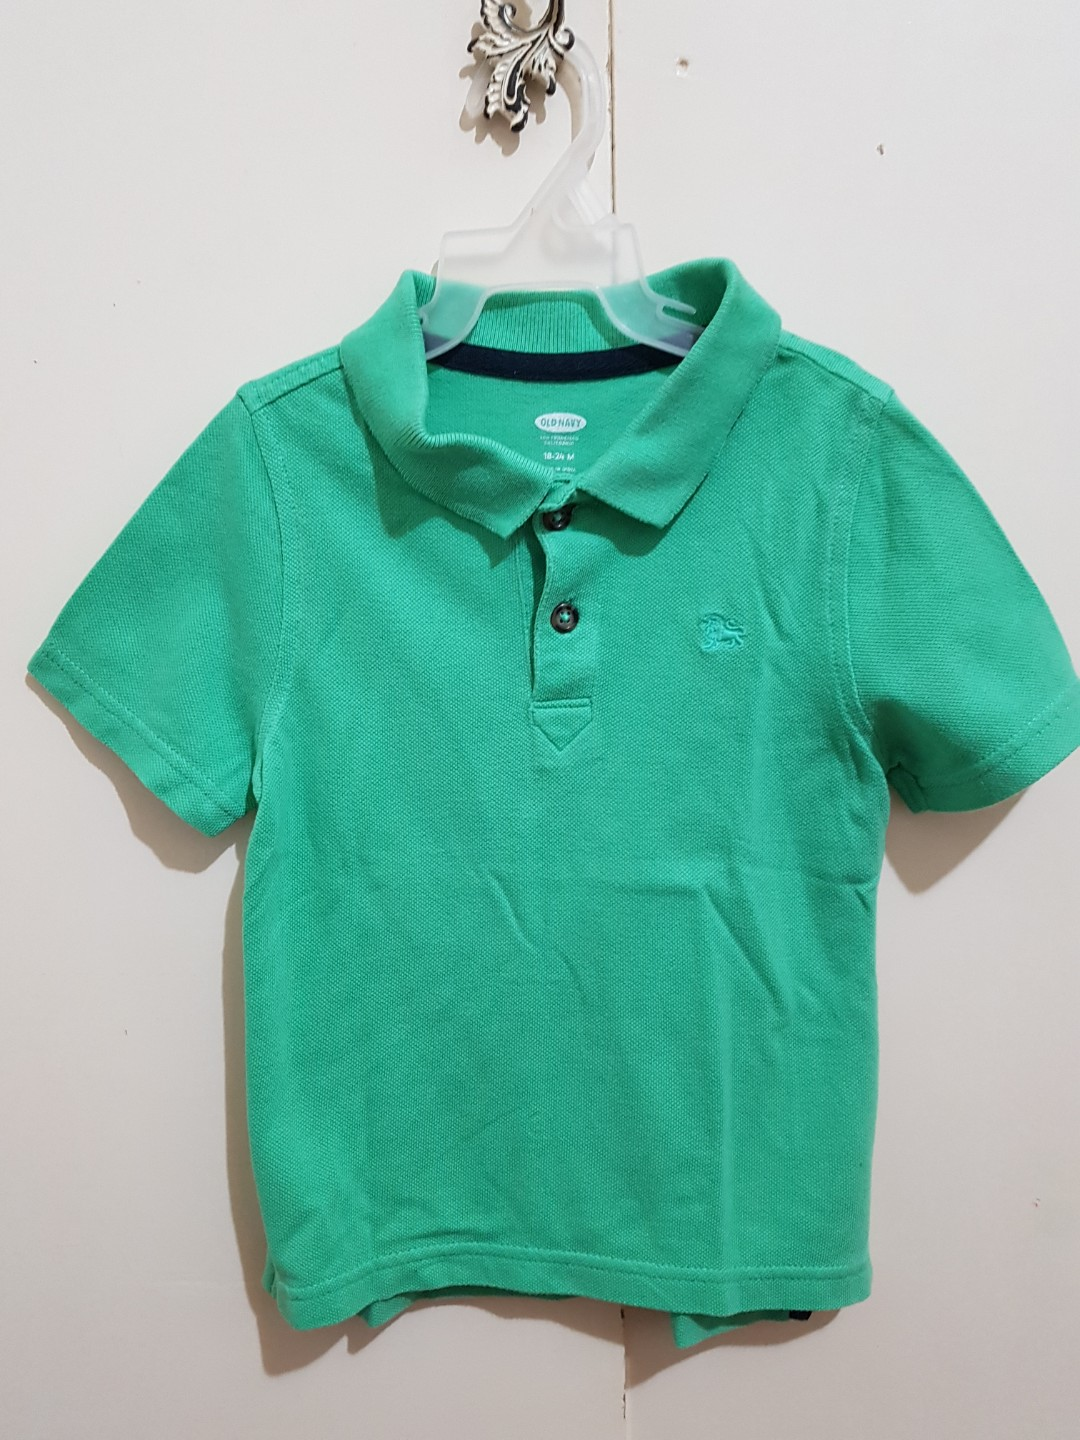 a2a4bfafeb80 Authentic Old Navy poloshirt for 18-24 months old toddler boy ...